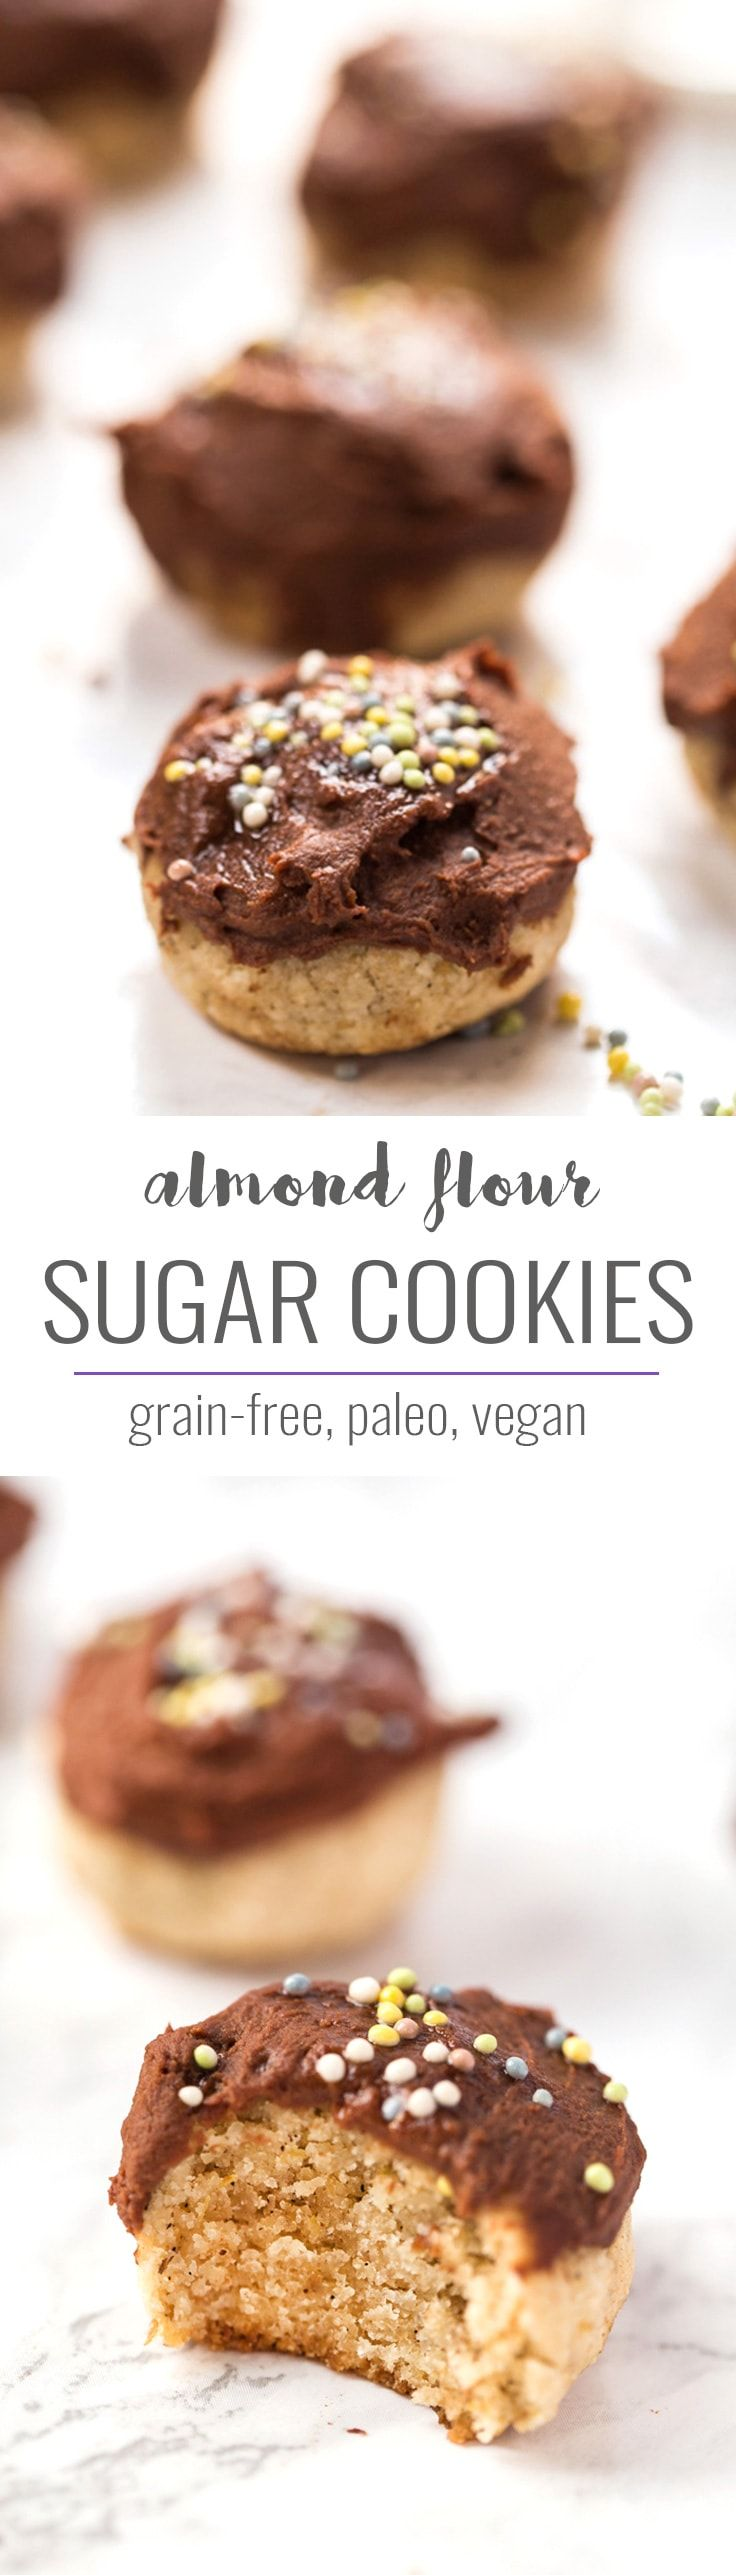 These CHEWY & HEALTHY almond flour sugar cookies are a healthy sweet treat. They're grain-free, paleo, vegan and are even topped with a healthy chocolate frosting!